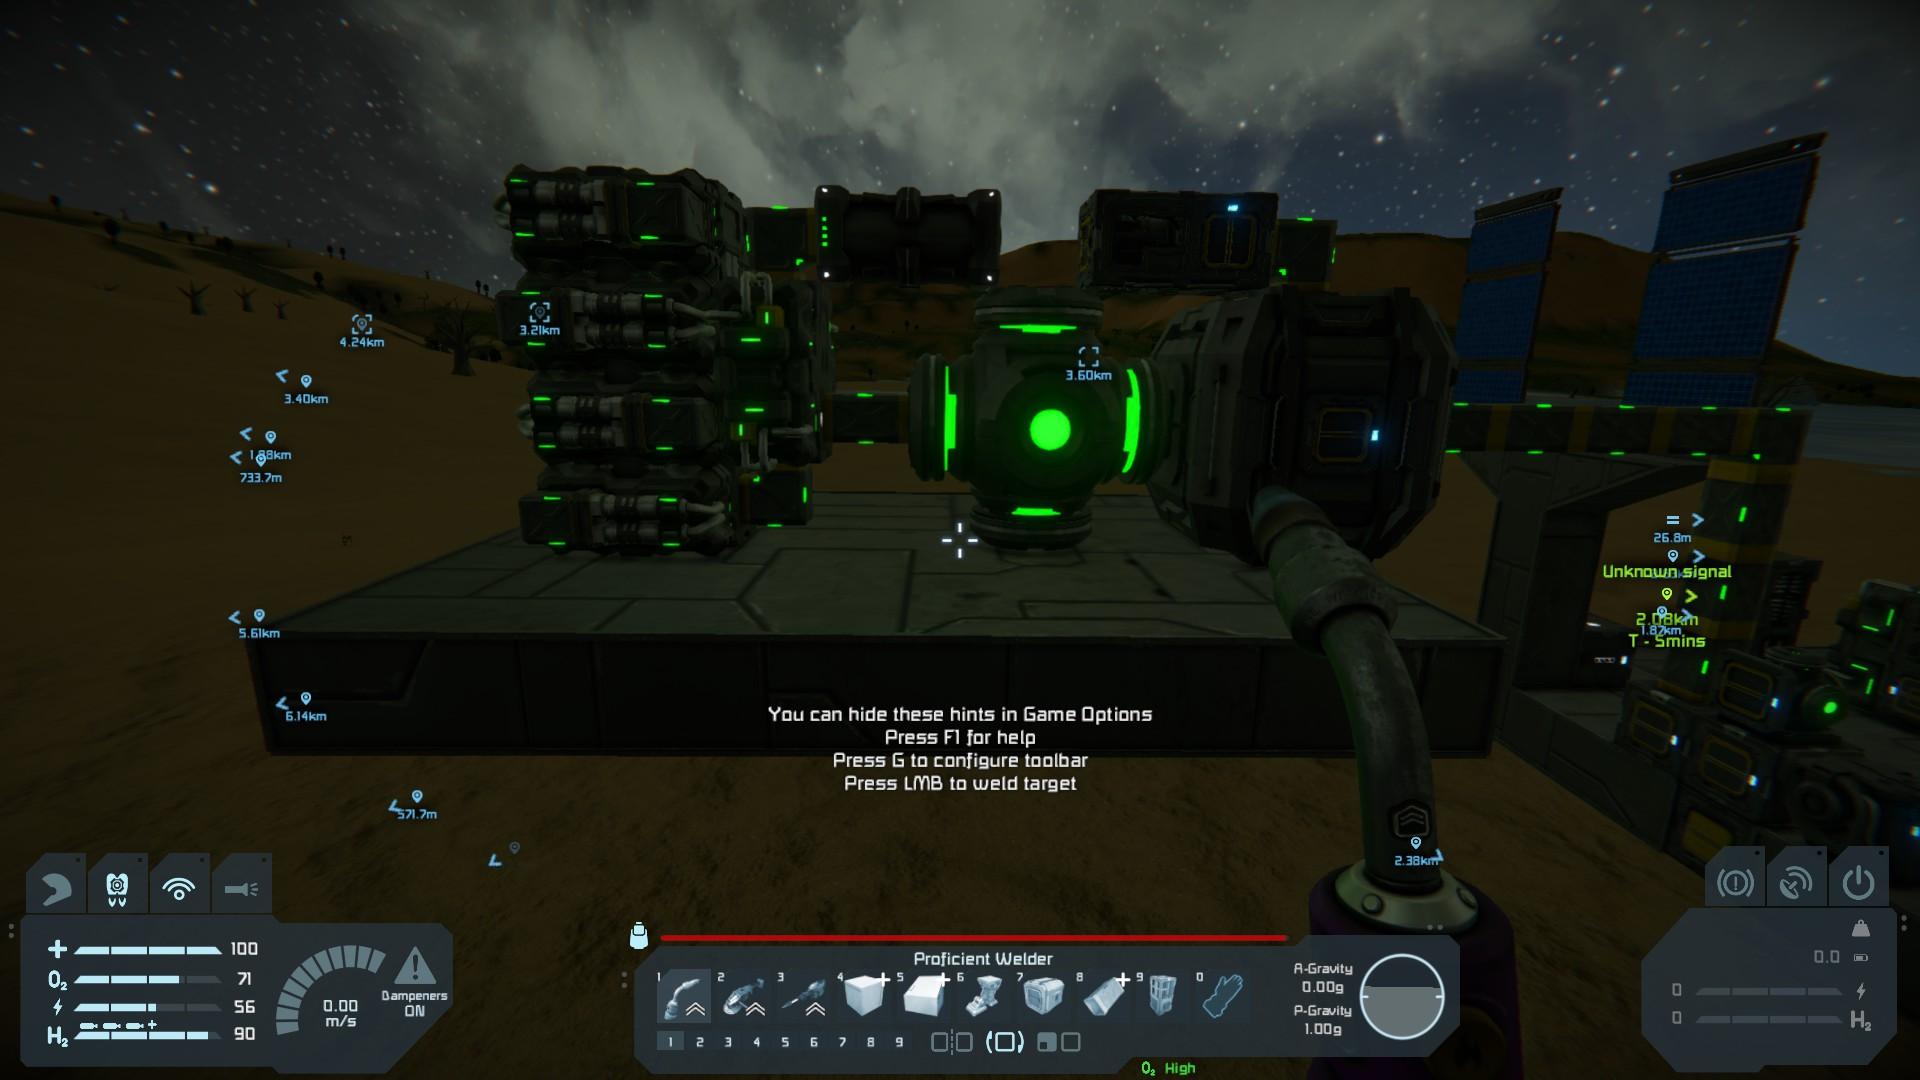 Space Engineers Thread - What the Daily WTF?